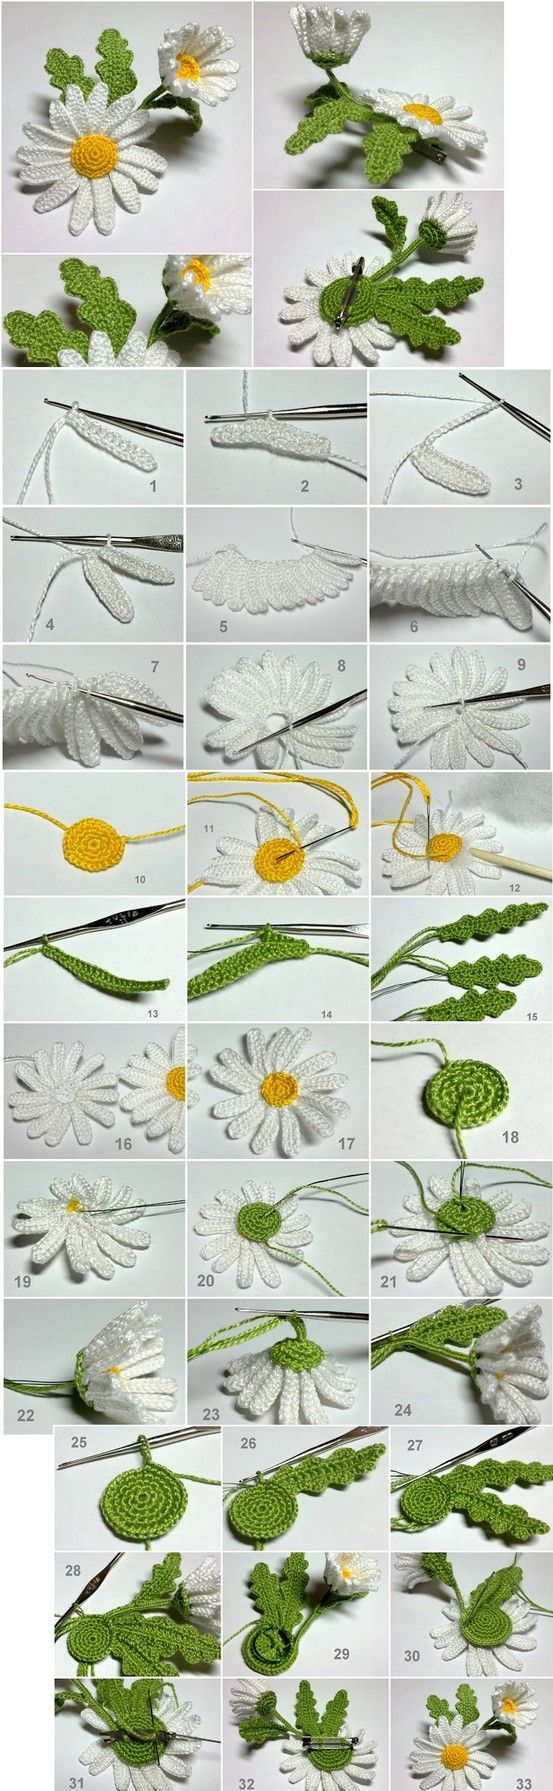 Crochet daisy brooch - complete pictorial! | (would love to know who to credit with this great make)